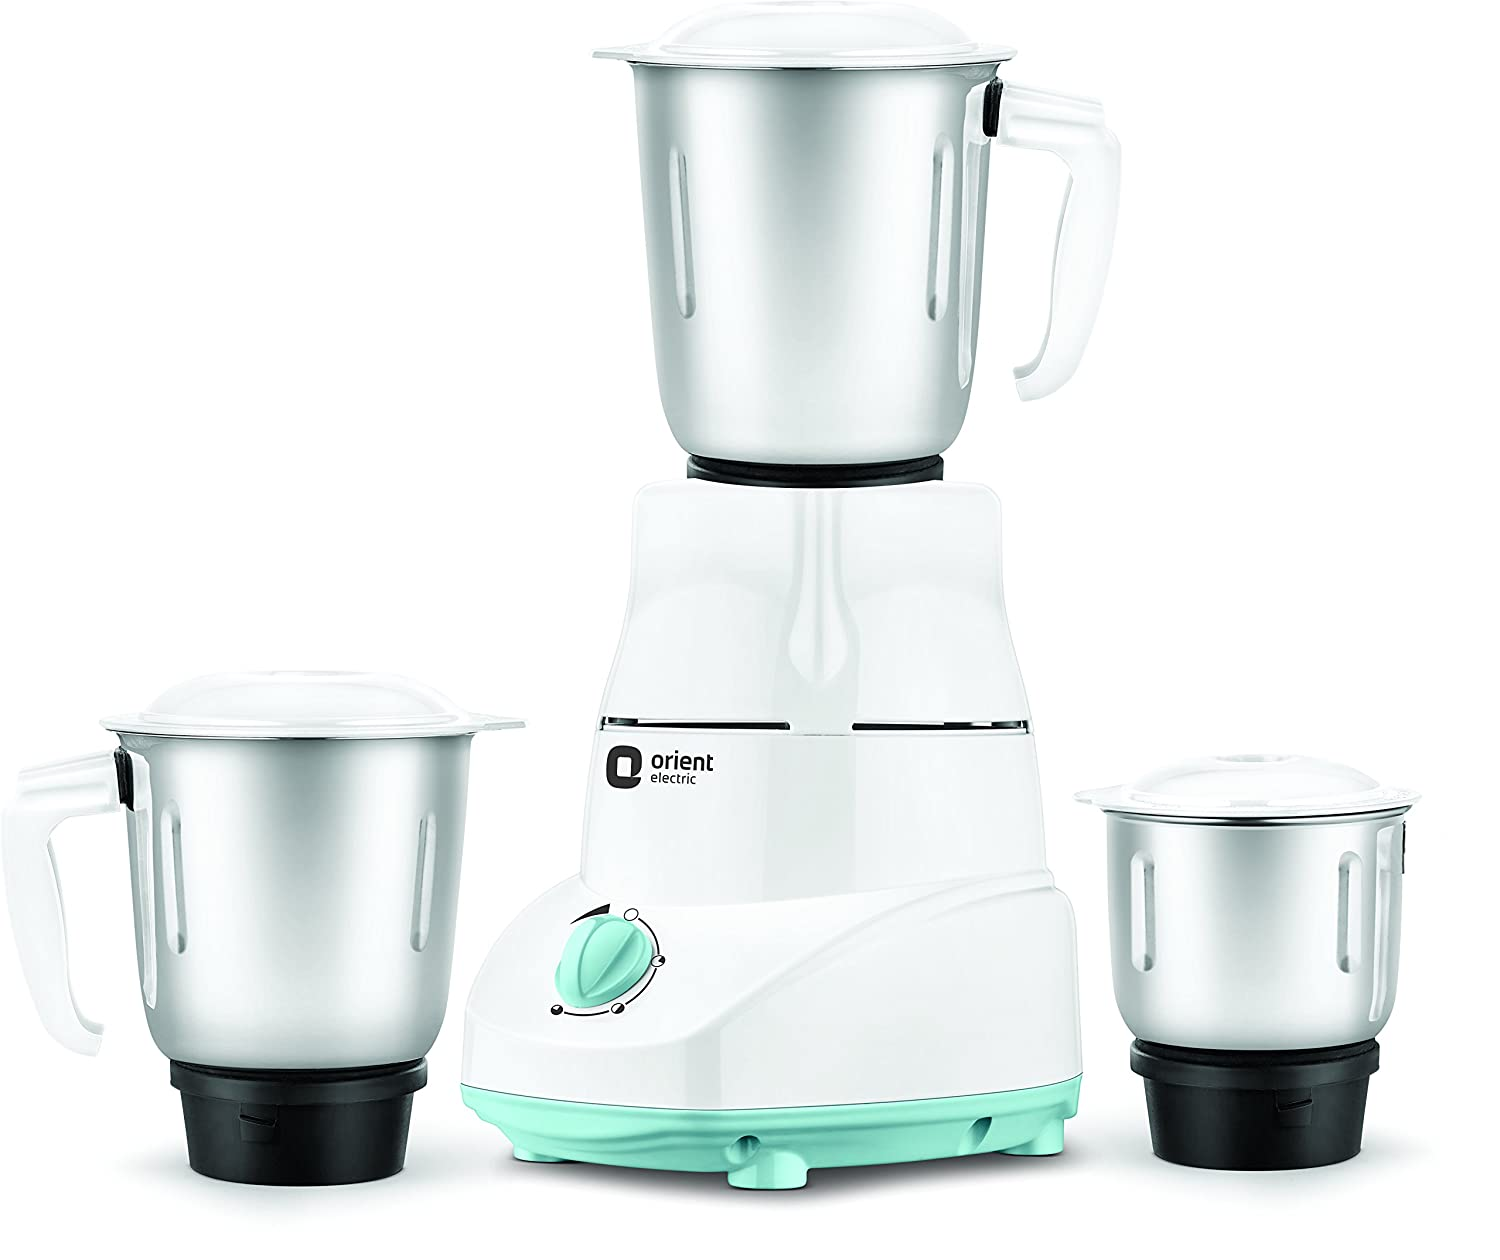 Orient Electric MGKK50B3 500 Watts Kitchen Kraft Mixer Grinder with 3 Jars (White) By Amazon @ Rs.1,399